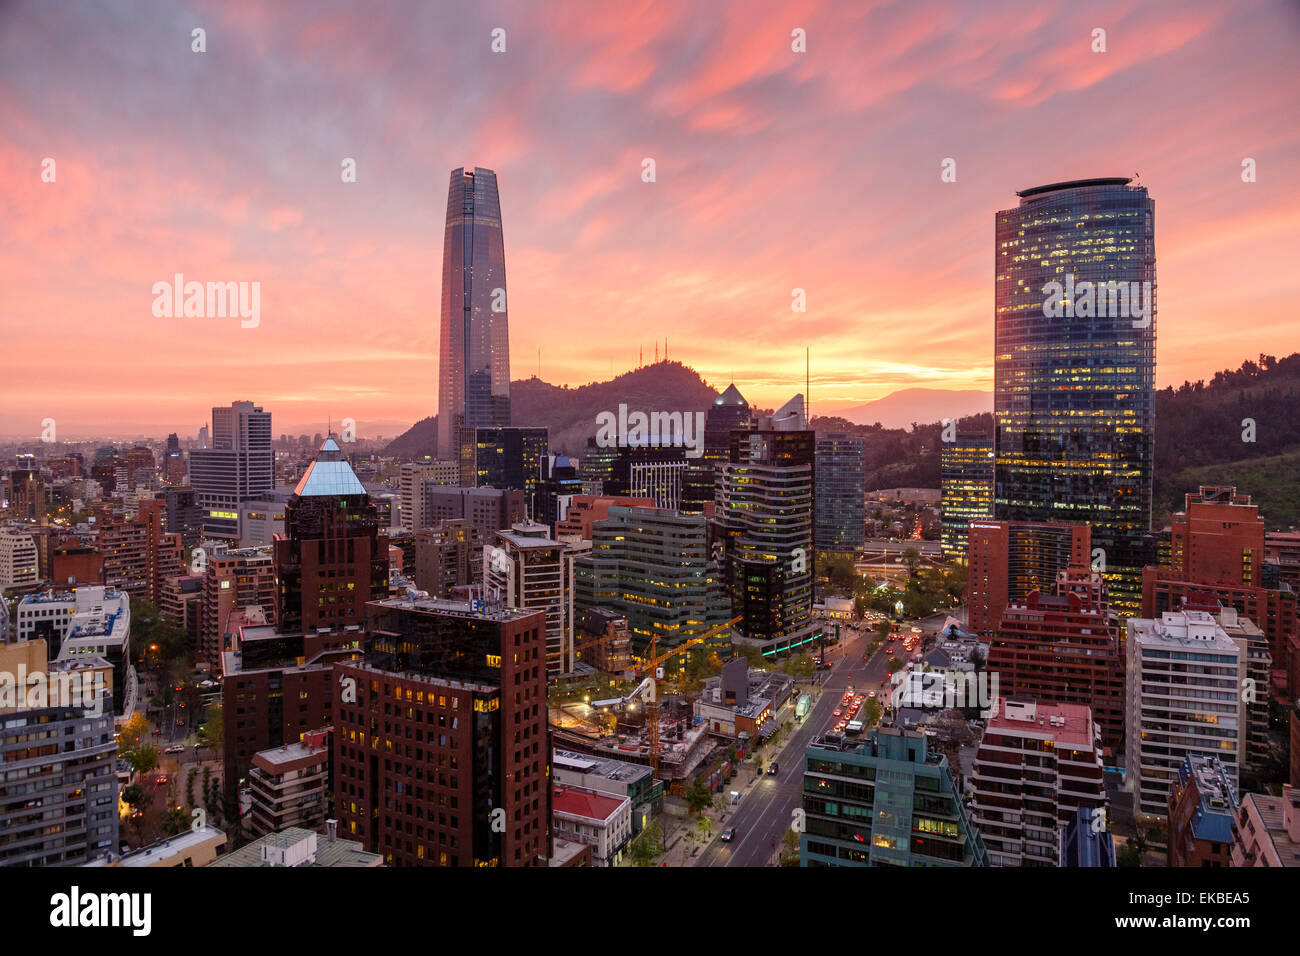 Skyline of Santiago with the Gran Torre, Santiago, Chile, South America - Stock Image